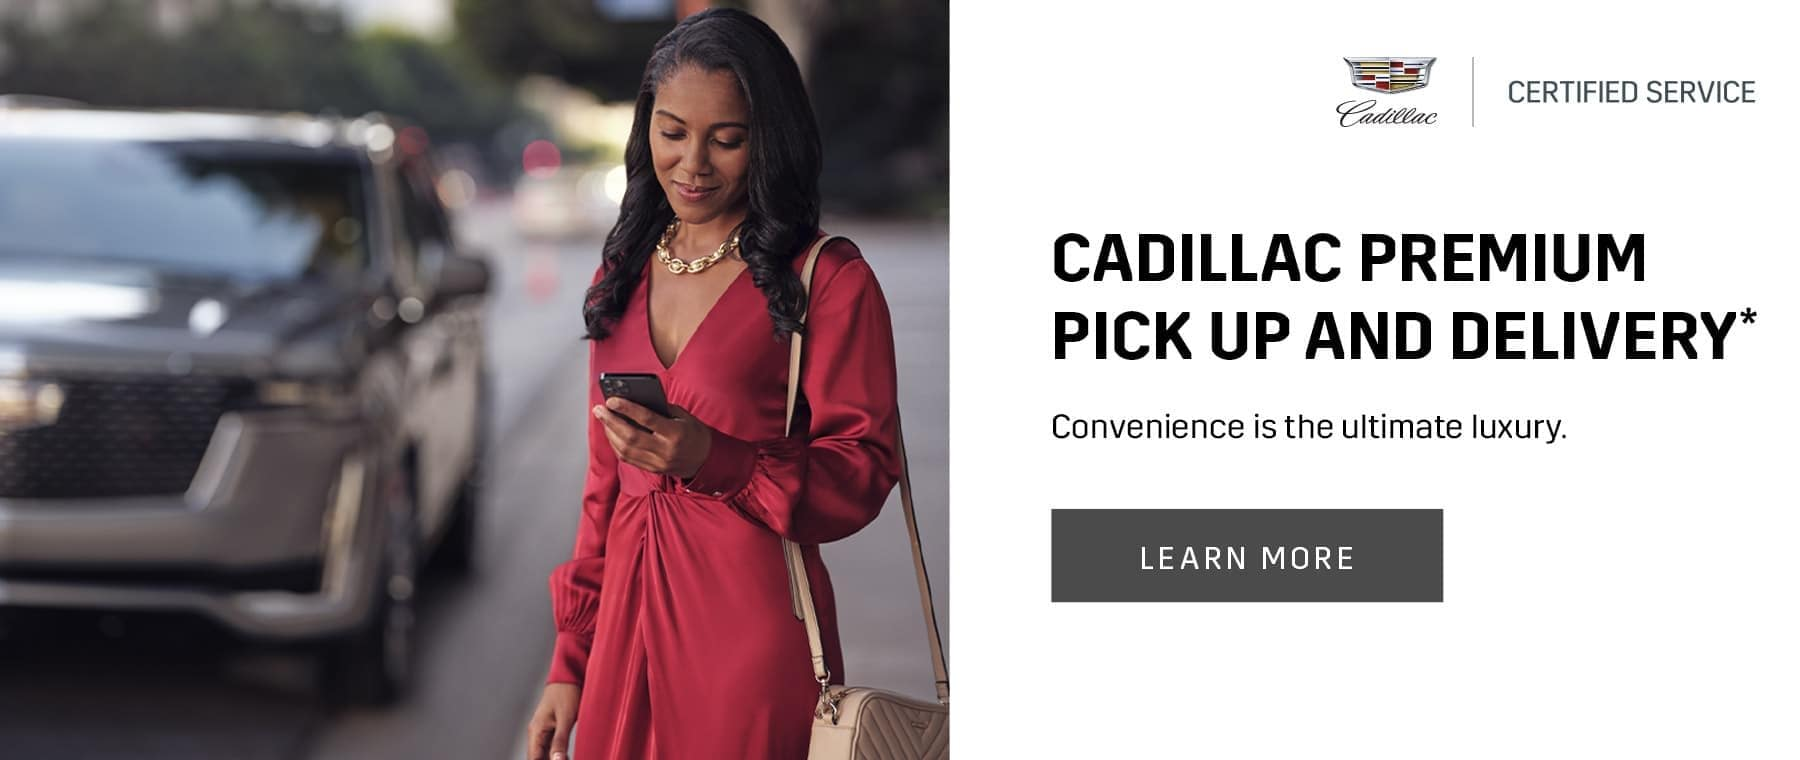 1-NATIONAL_JULY_2021_CADILLAC-CS_PREMIUM-PICK-UP-AND-DELIVERY_SERVICE_1800X760-min (1)